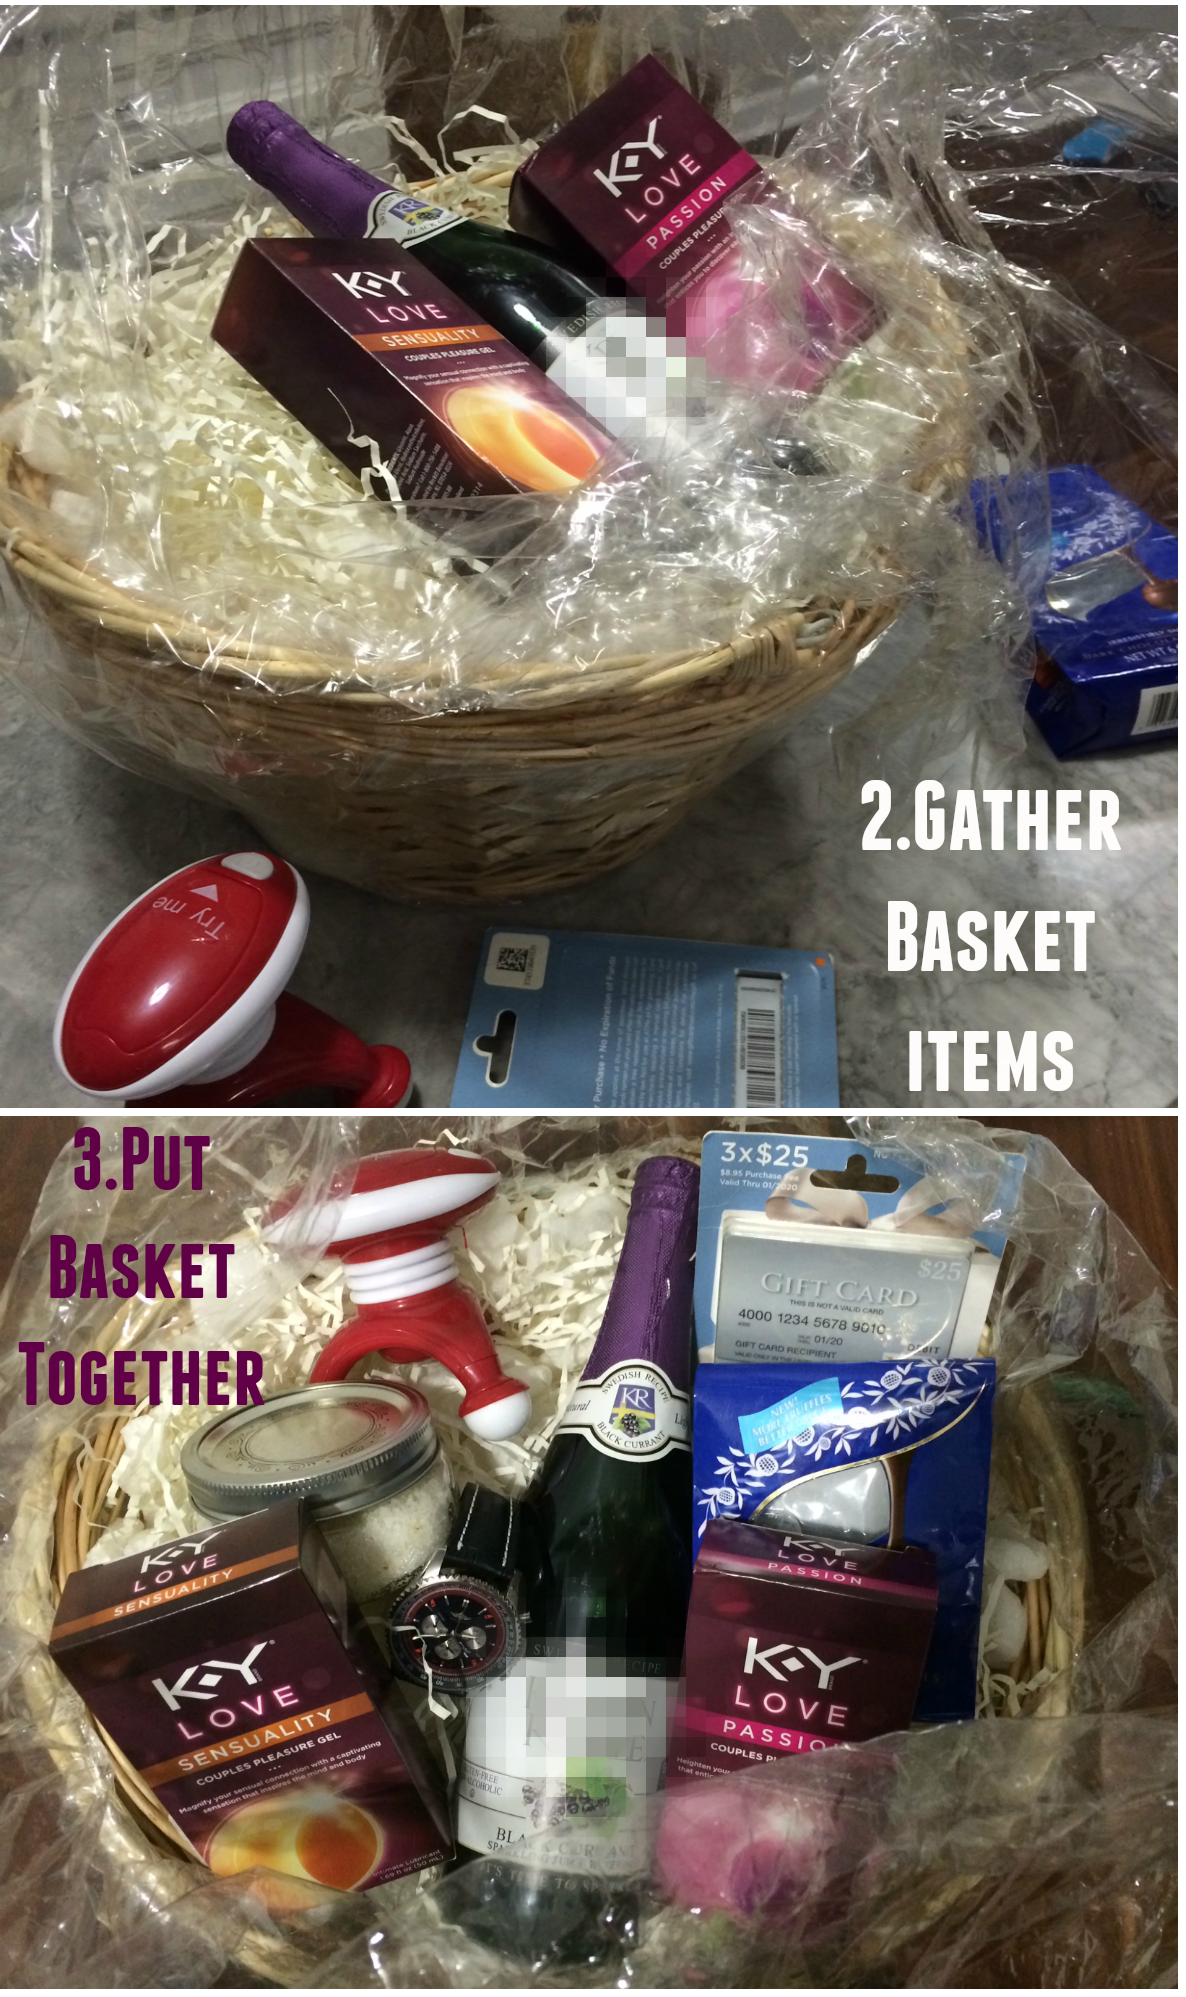 & valentines day diy date night gift basket idea - Weu0027re Parents